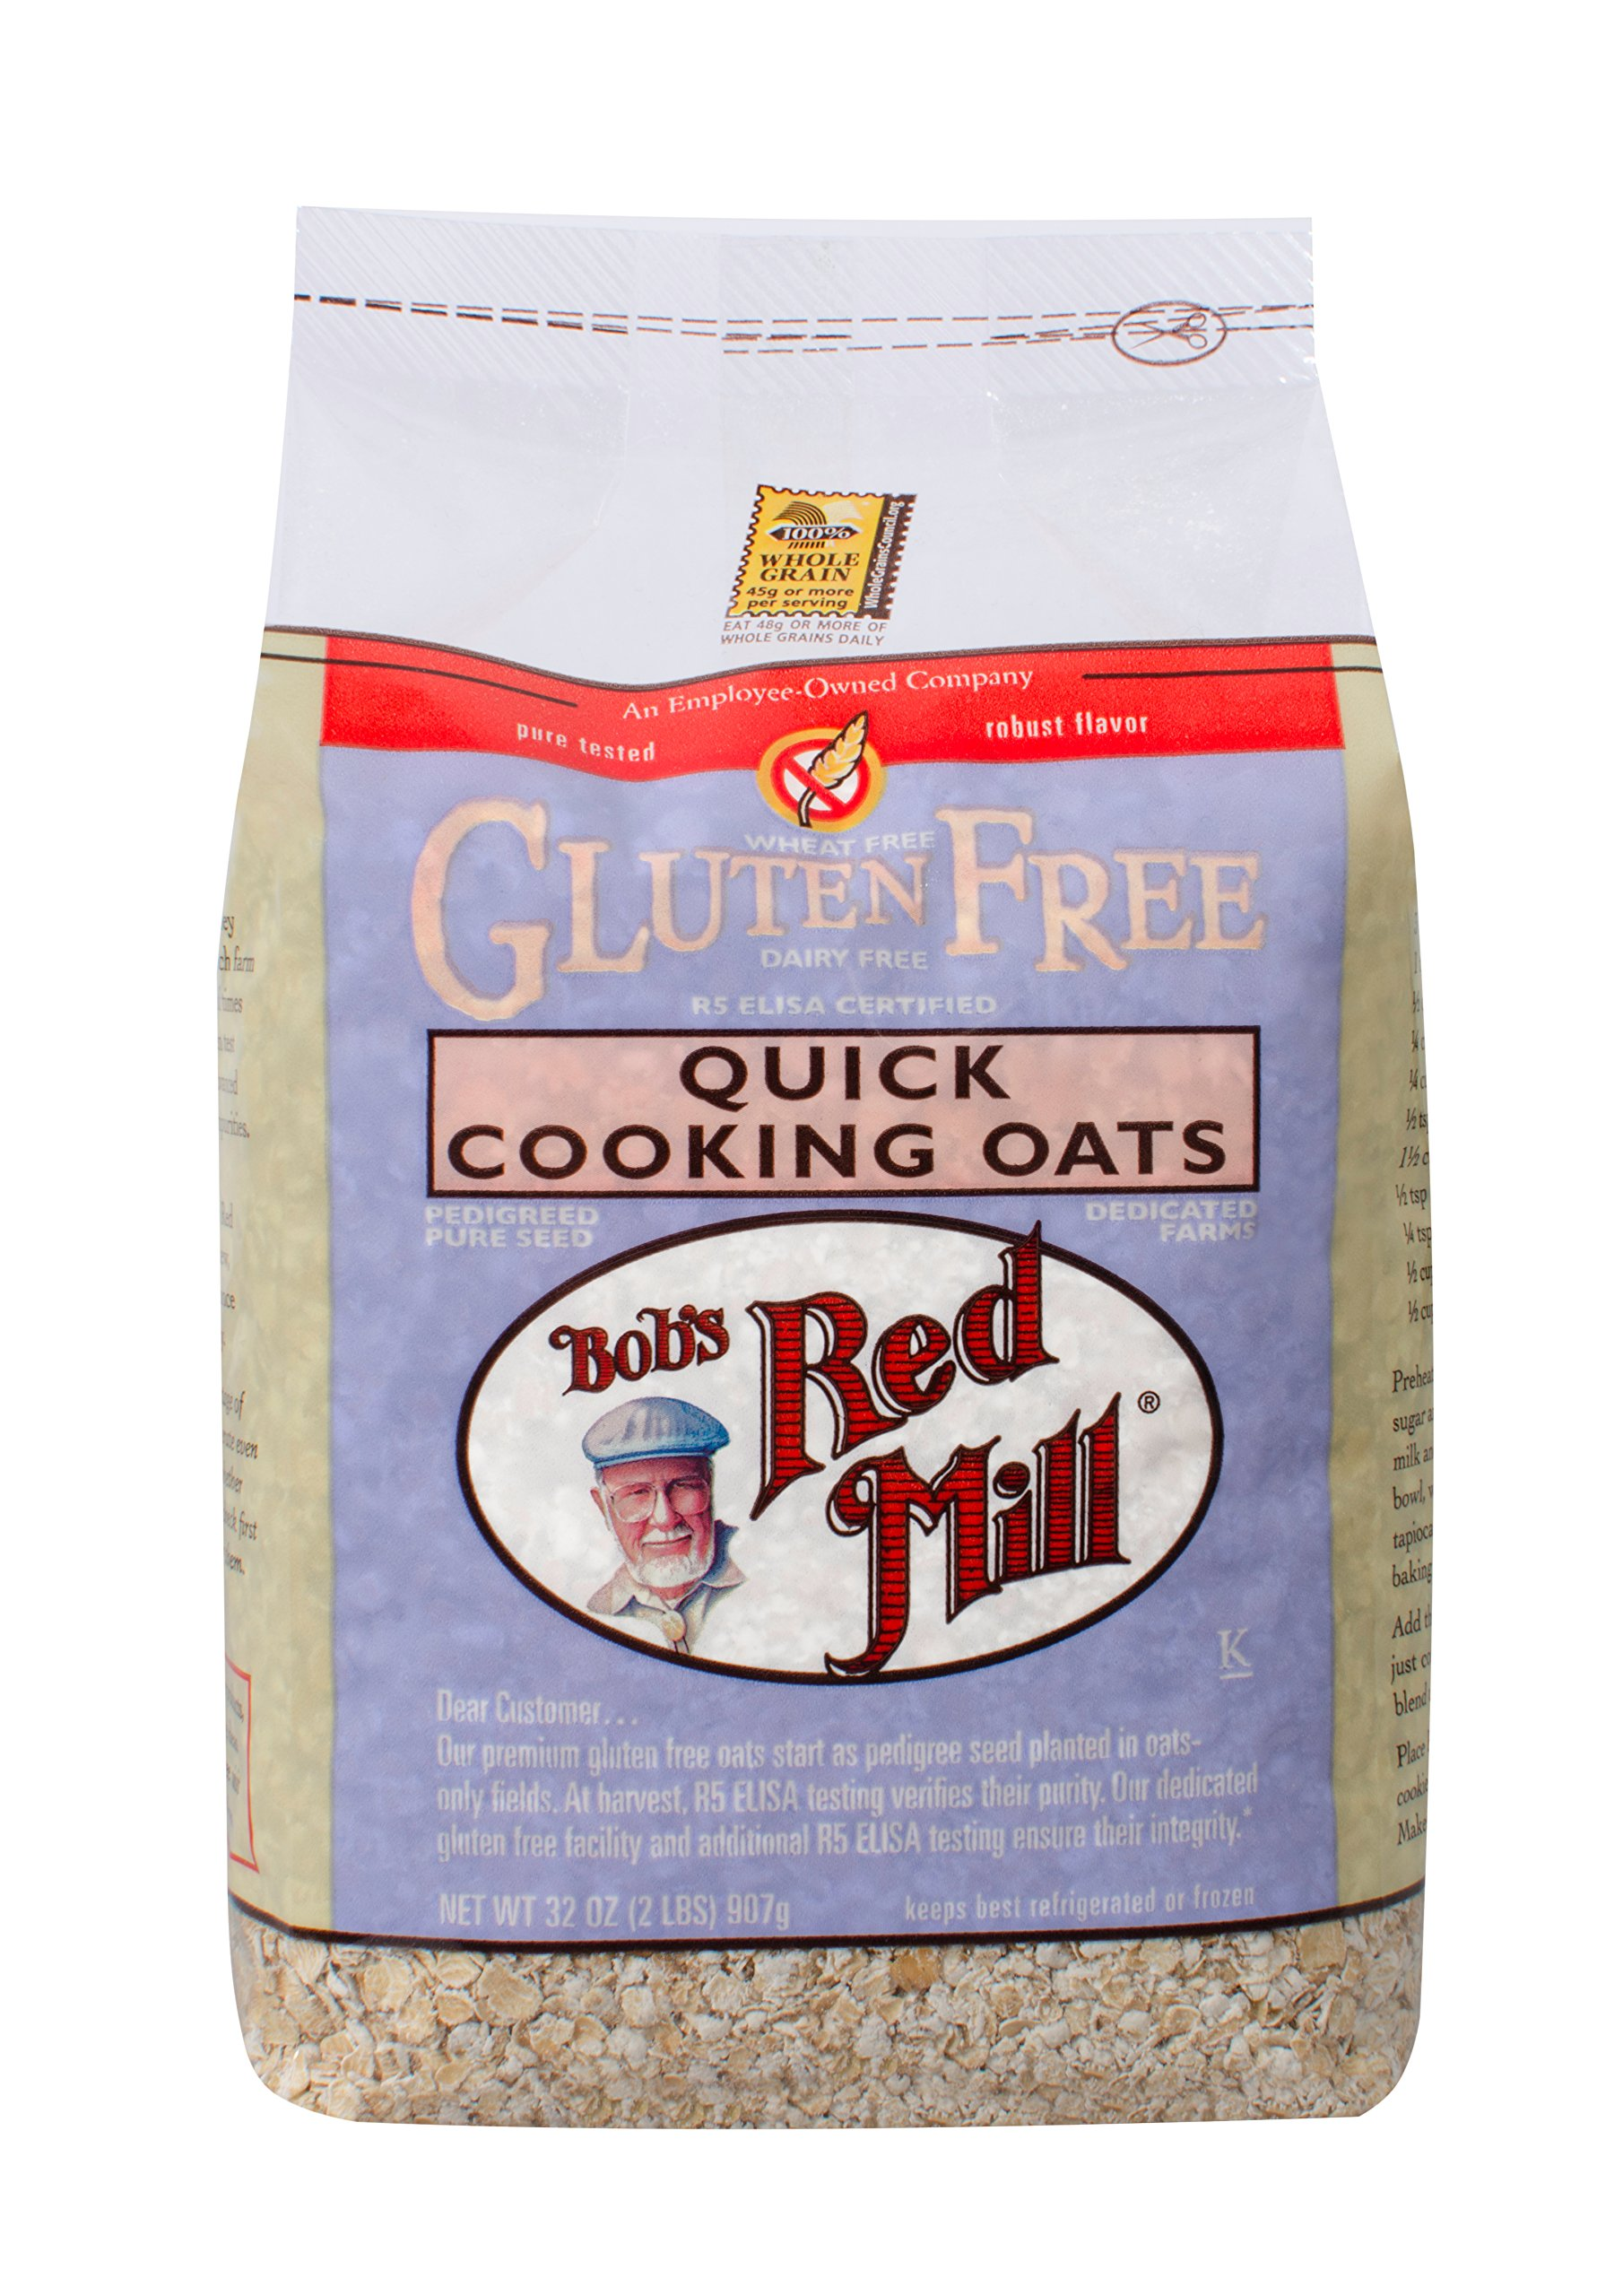 Bob's Red Mill Gluten Free Organic Quick Cooking Rolled Oats, 32 Oz (4 Pack) by Bob's Red Mill (Image #3)